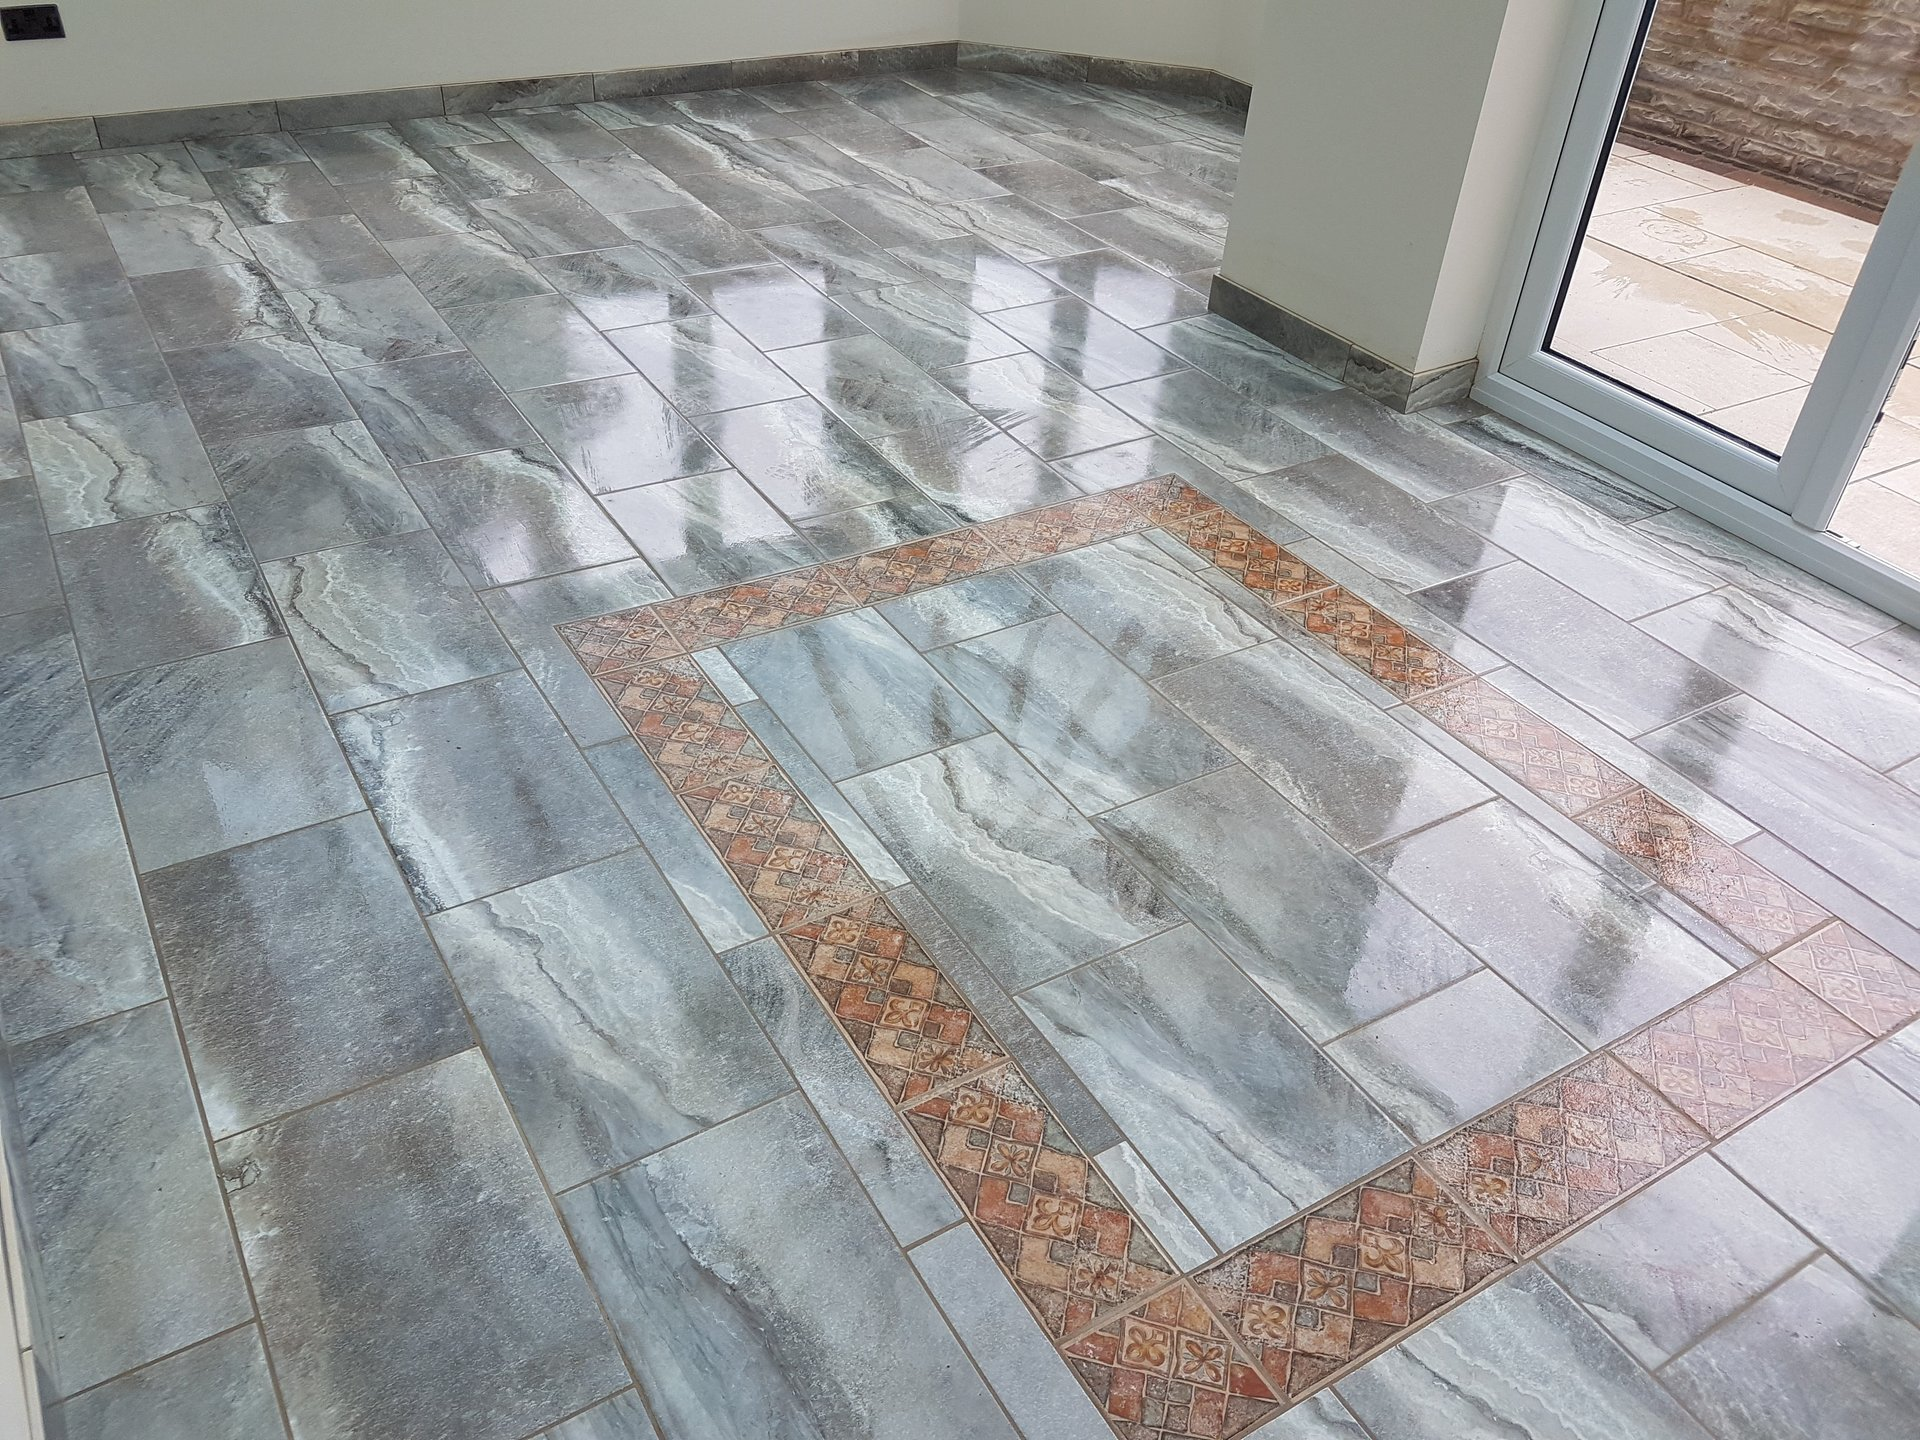 Graham wood ceramics porcelain flooring in guisborough create that striking design with a brick bond layout coloured grouting and central feature dailygadgetfo Gallery